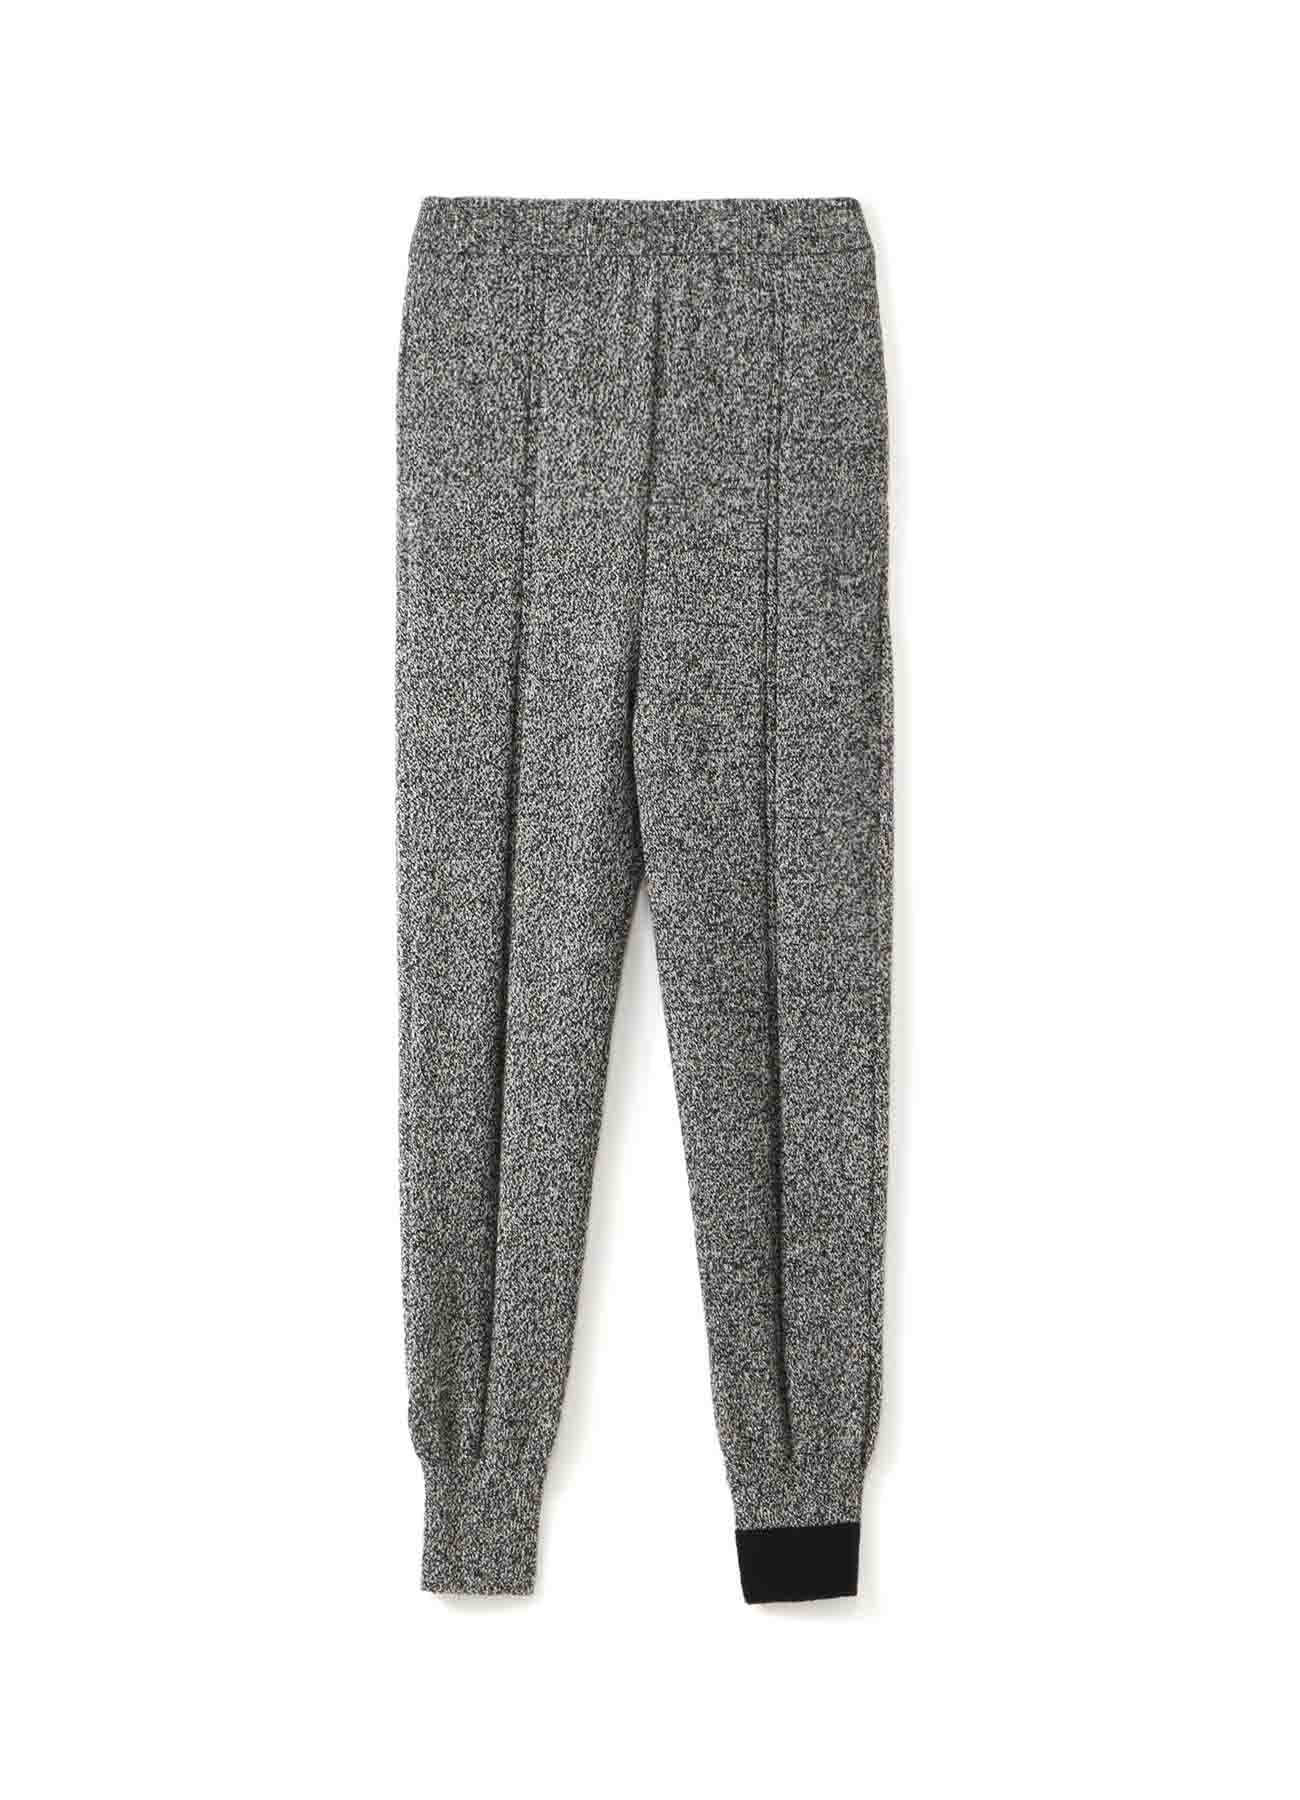 RISMATbyY's WASHABLE WOOL CENTER RIB PANTS